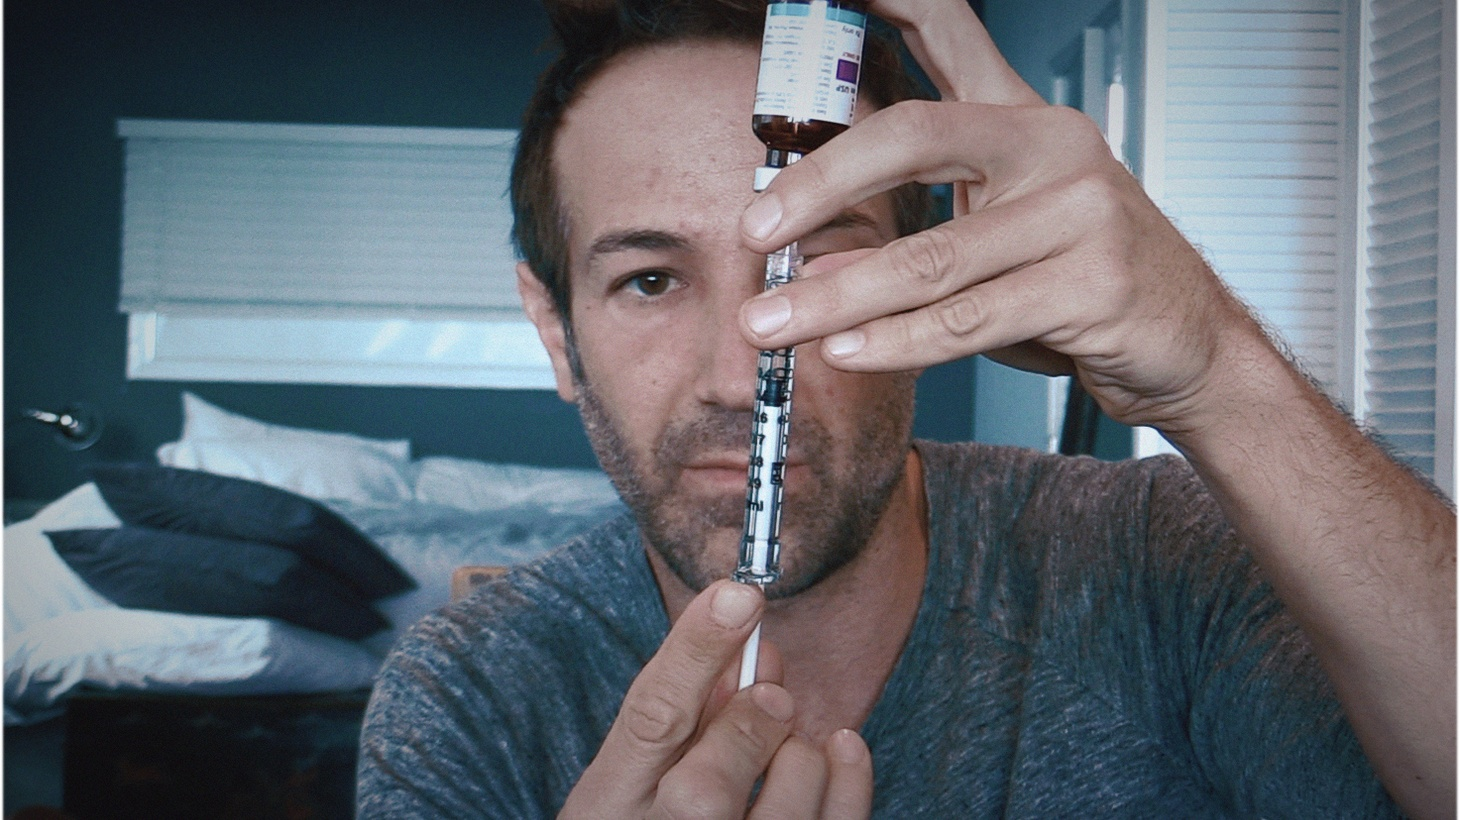 Bryan Fogel wanted to find out how Lance Armstrong never failed a drug test despite doping. He found a Russian scientist who told him how to do it to himself. Then he helped reveal a massive doping scandal.